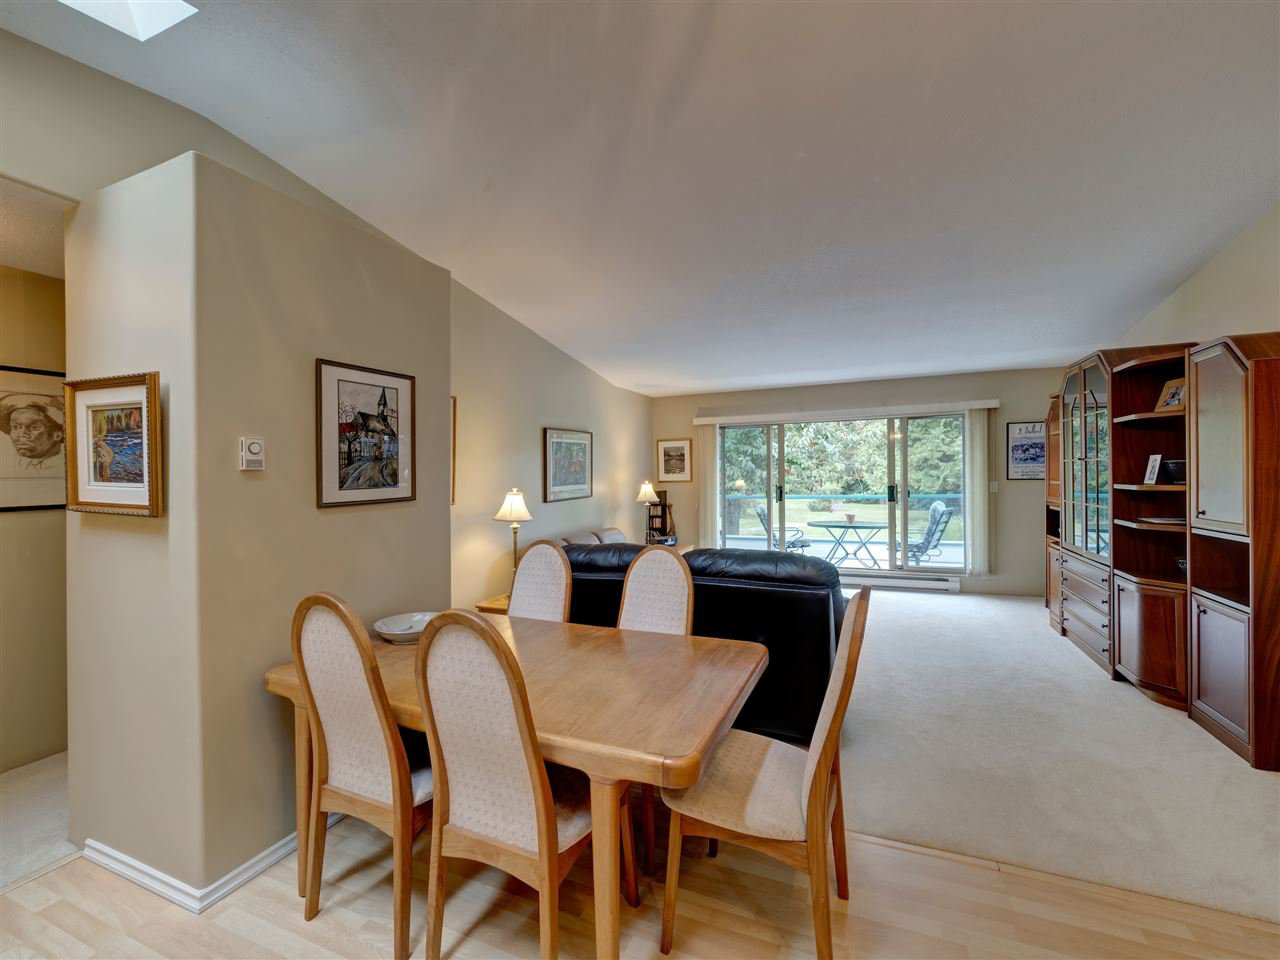 """Photo 14: Photos: 41 555 EAGLECREST Drive in Gibsons: Gibsons & Area Townhouse for sale in """"GEORGIA MIRAGE"""" (Sunshine Coast)  : MLS®# R2485008"""